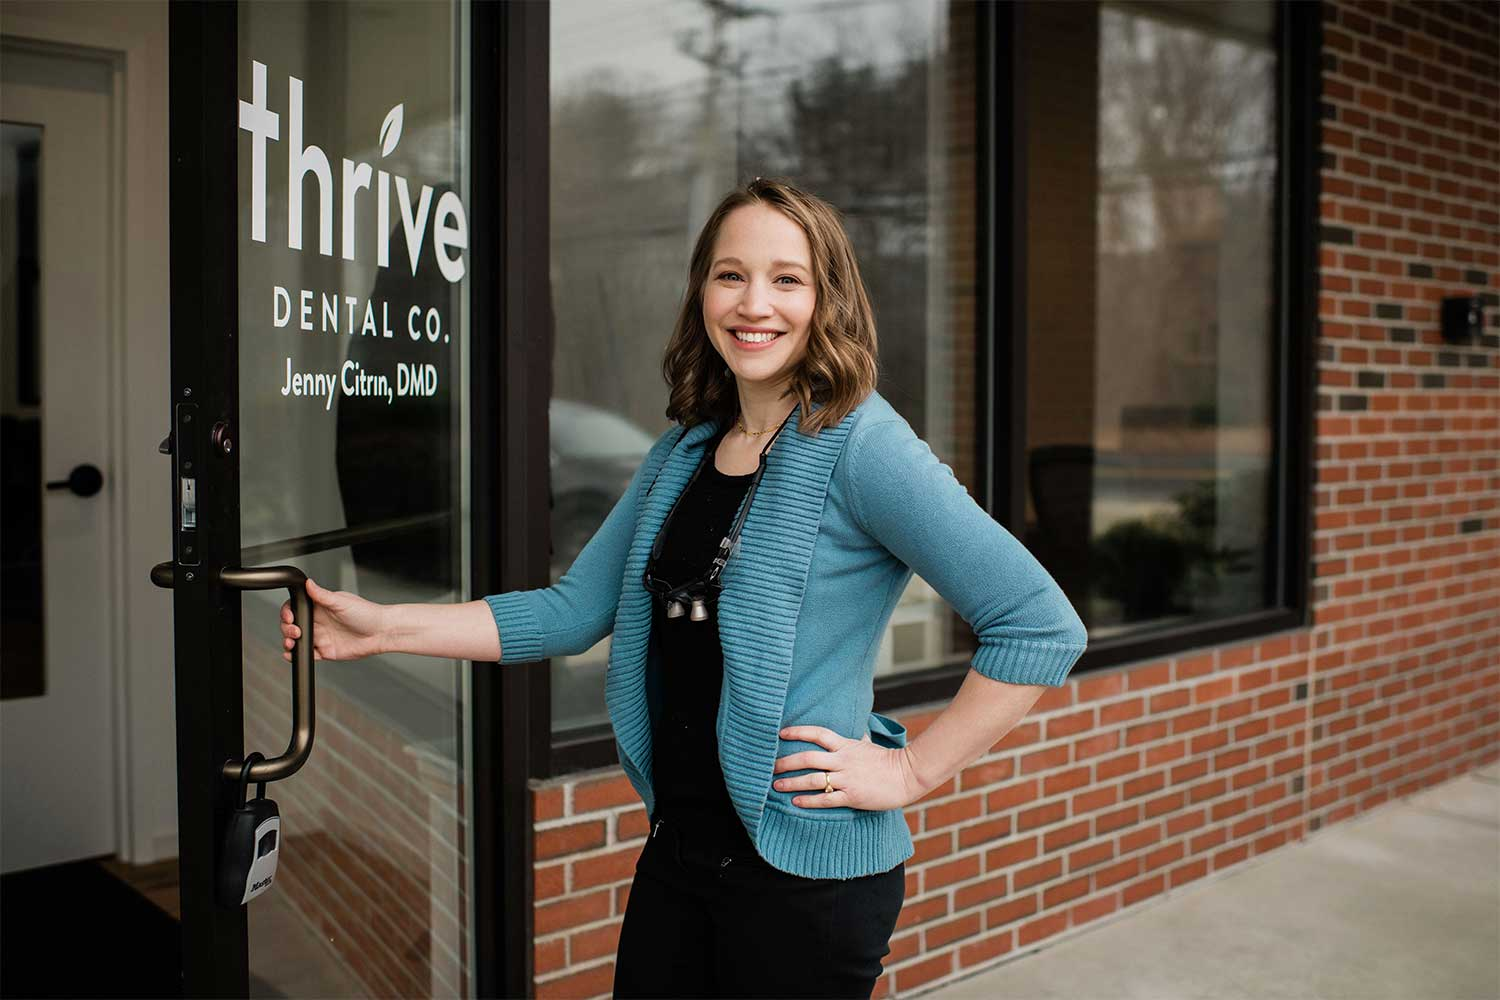 Photo of Acton, MA dentist Jenny Citrin, standing outside the front door of her dental practice